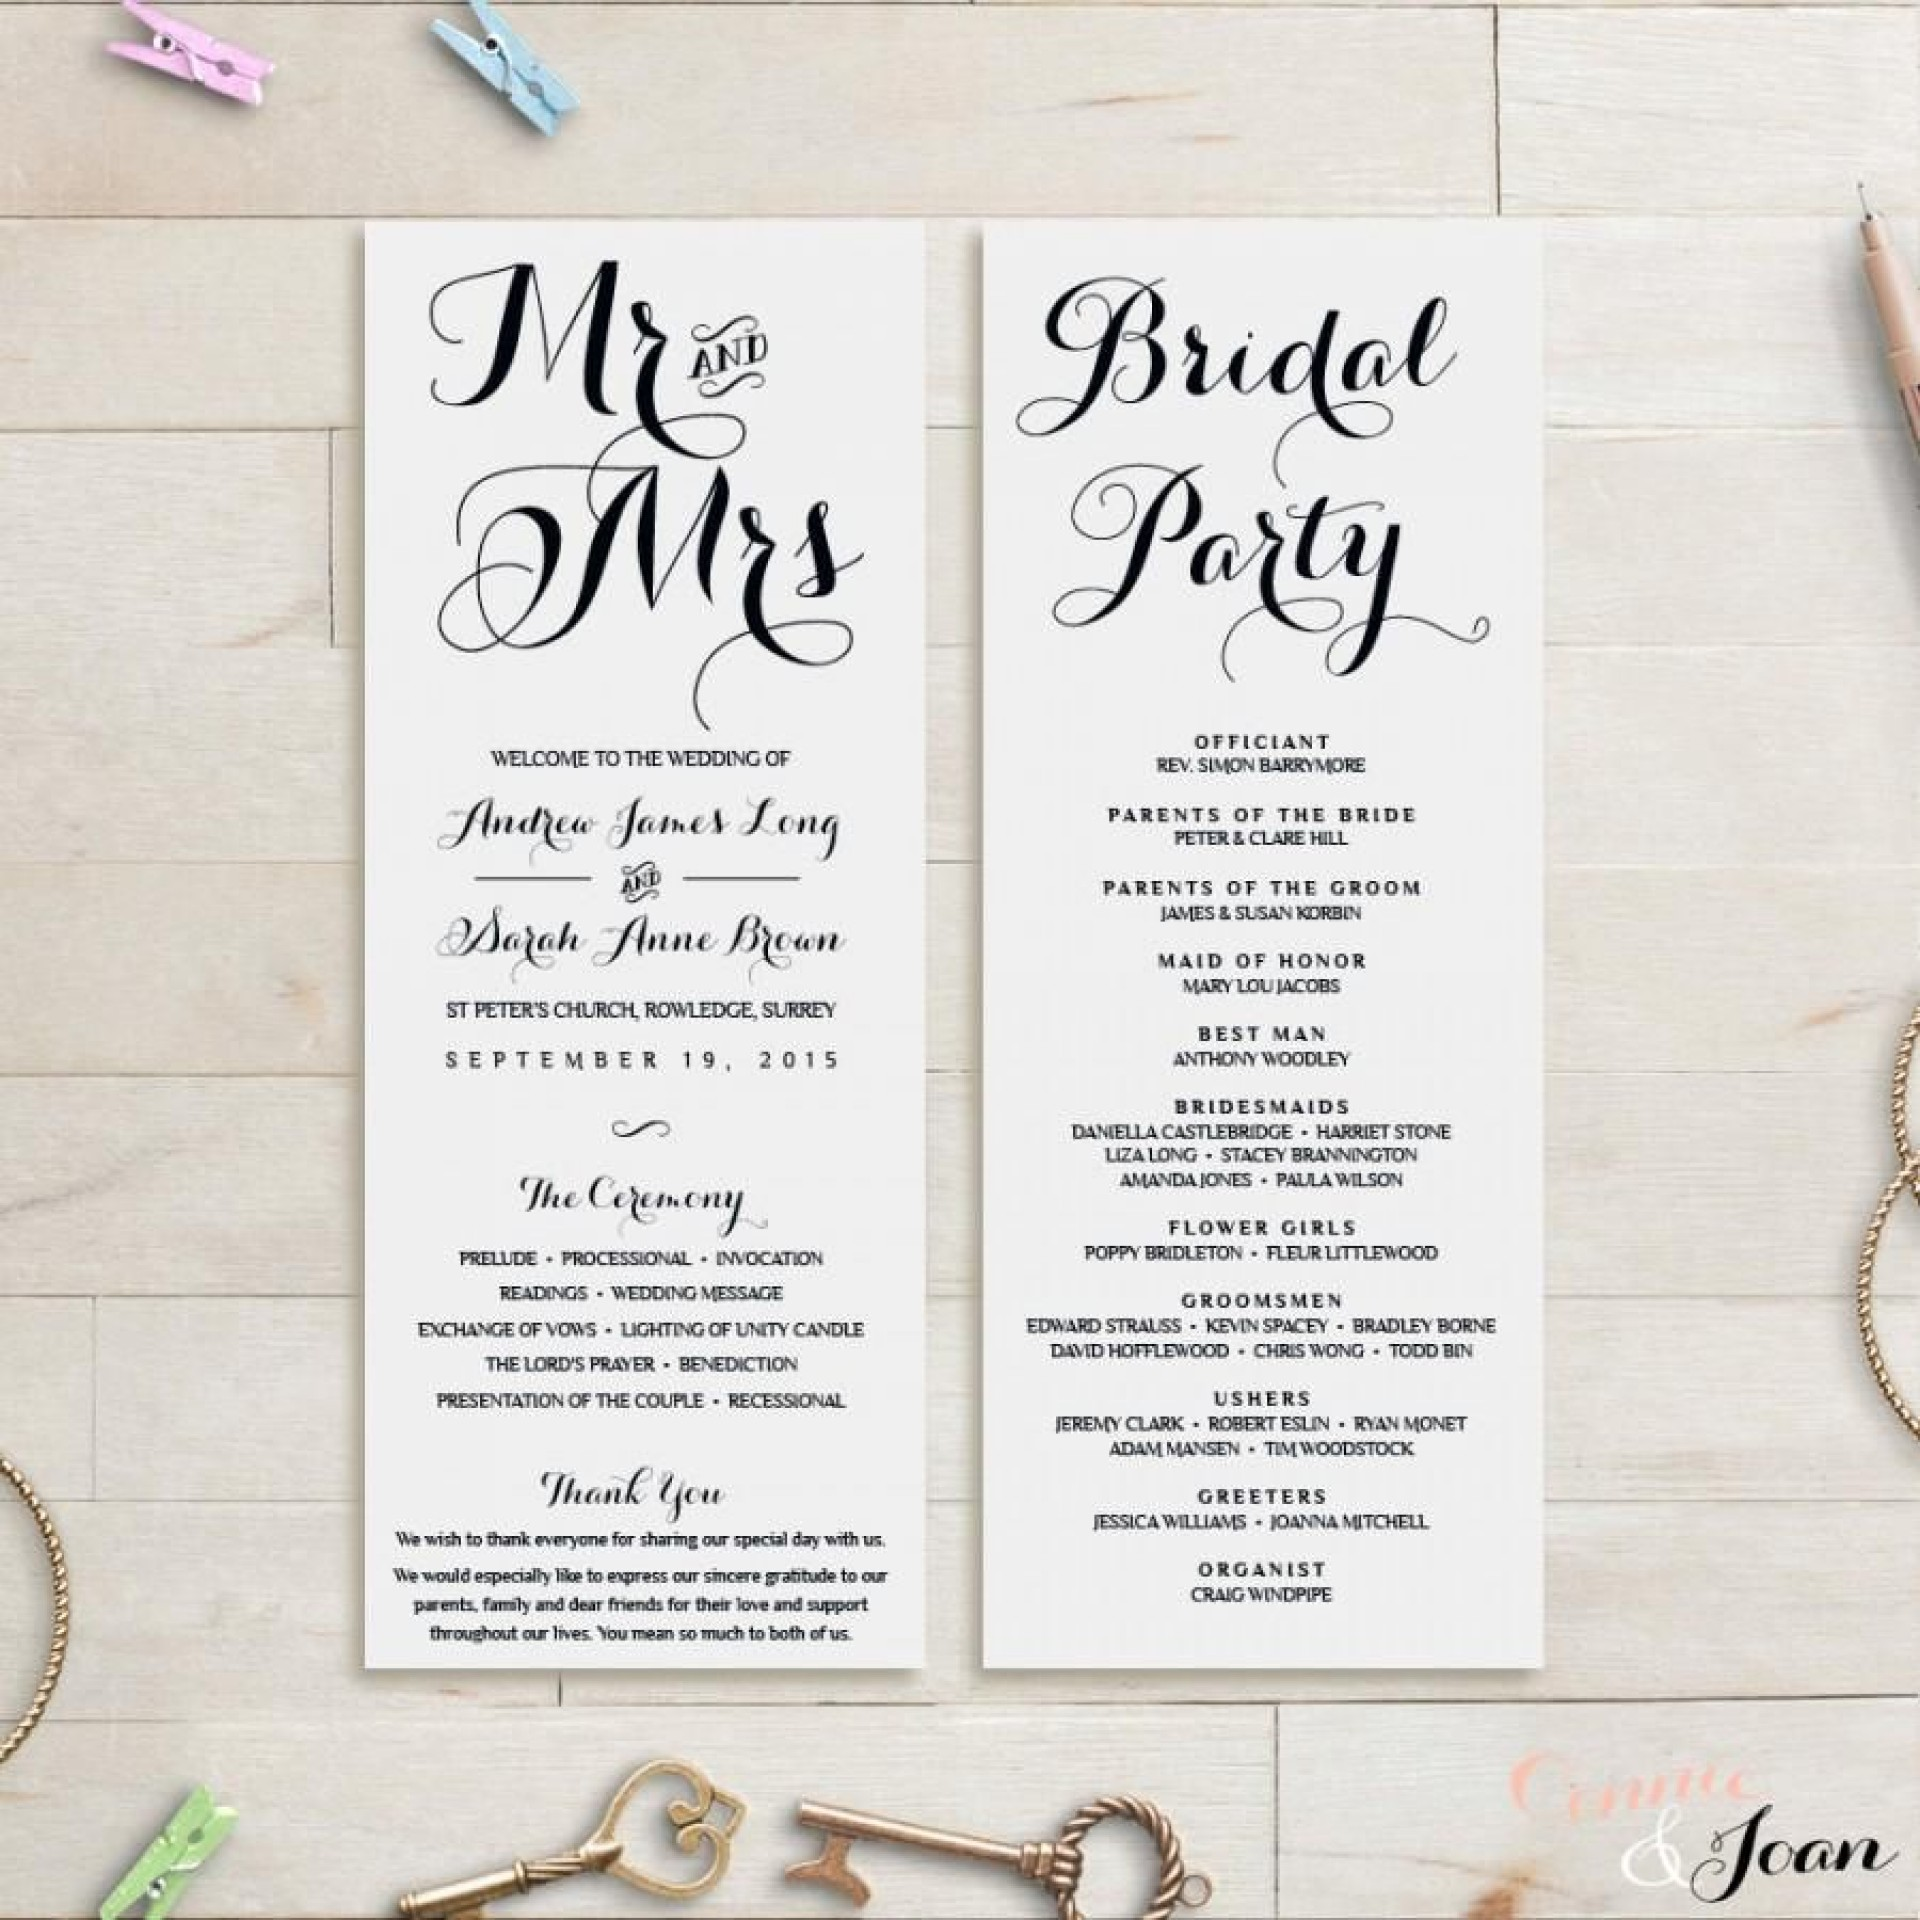 008 Formidable Wedding Order Of Service Template Concept  Pdf Publisher Microsoft Word1920